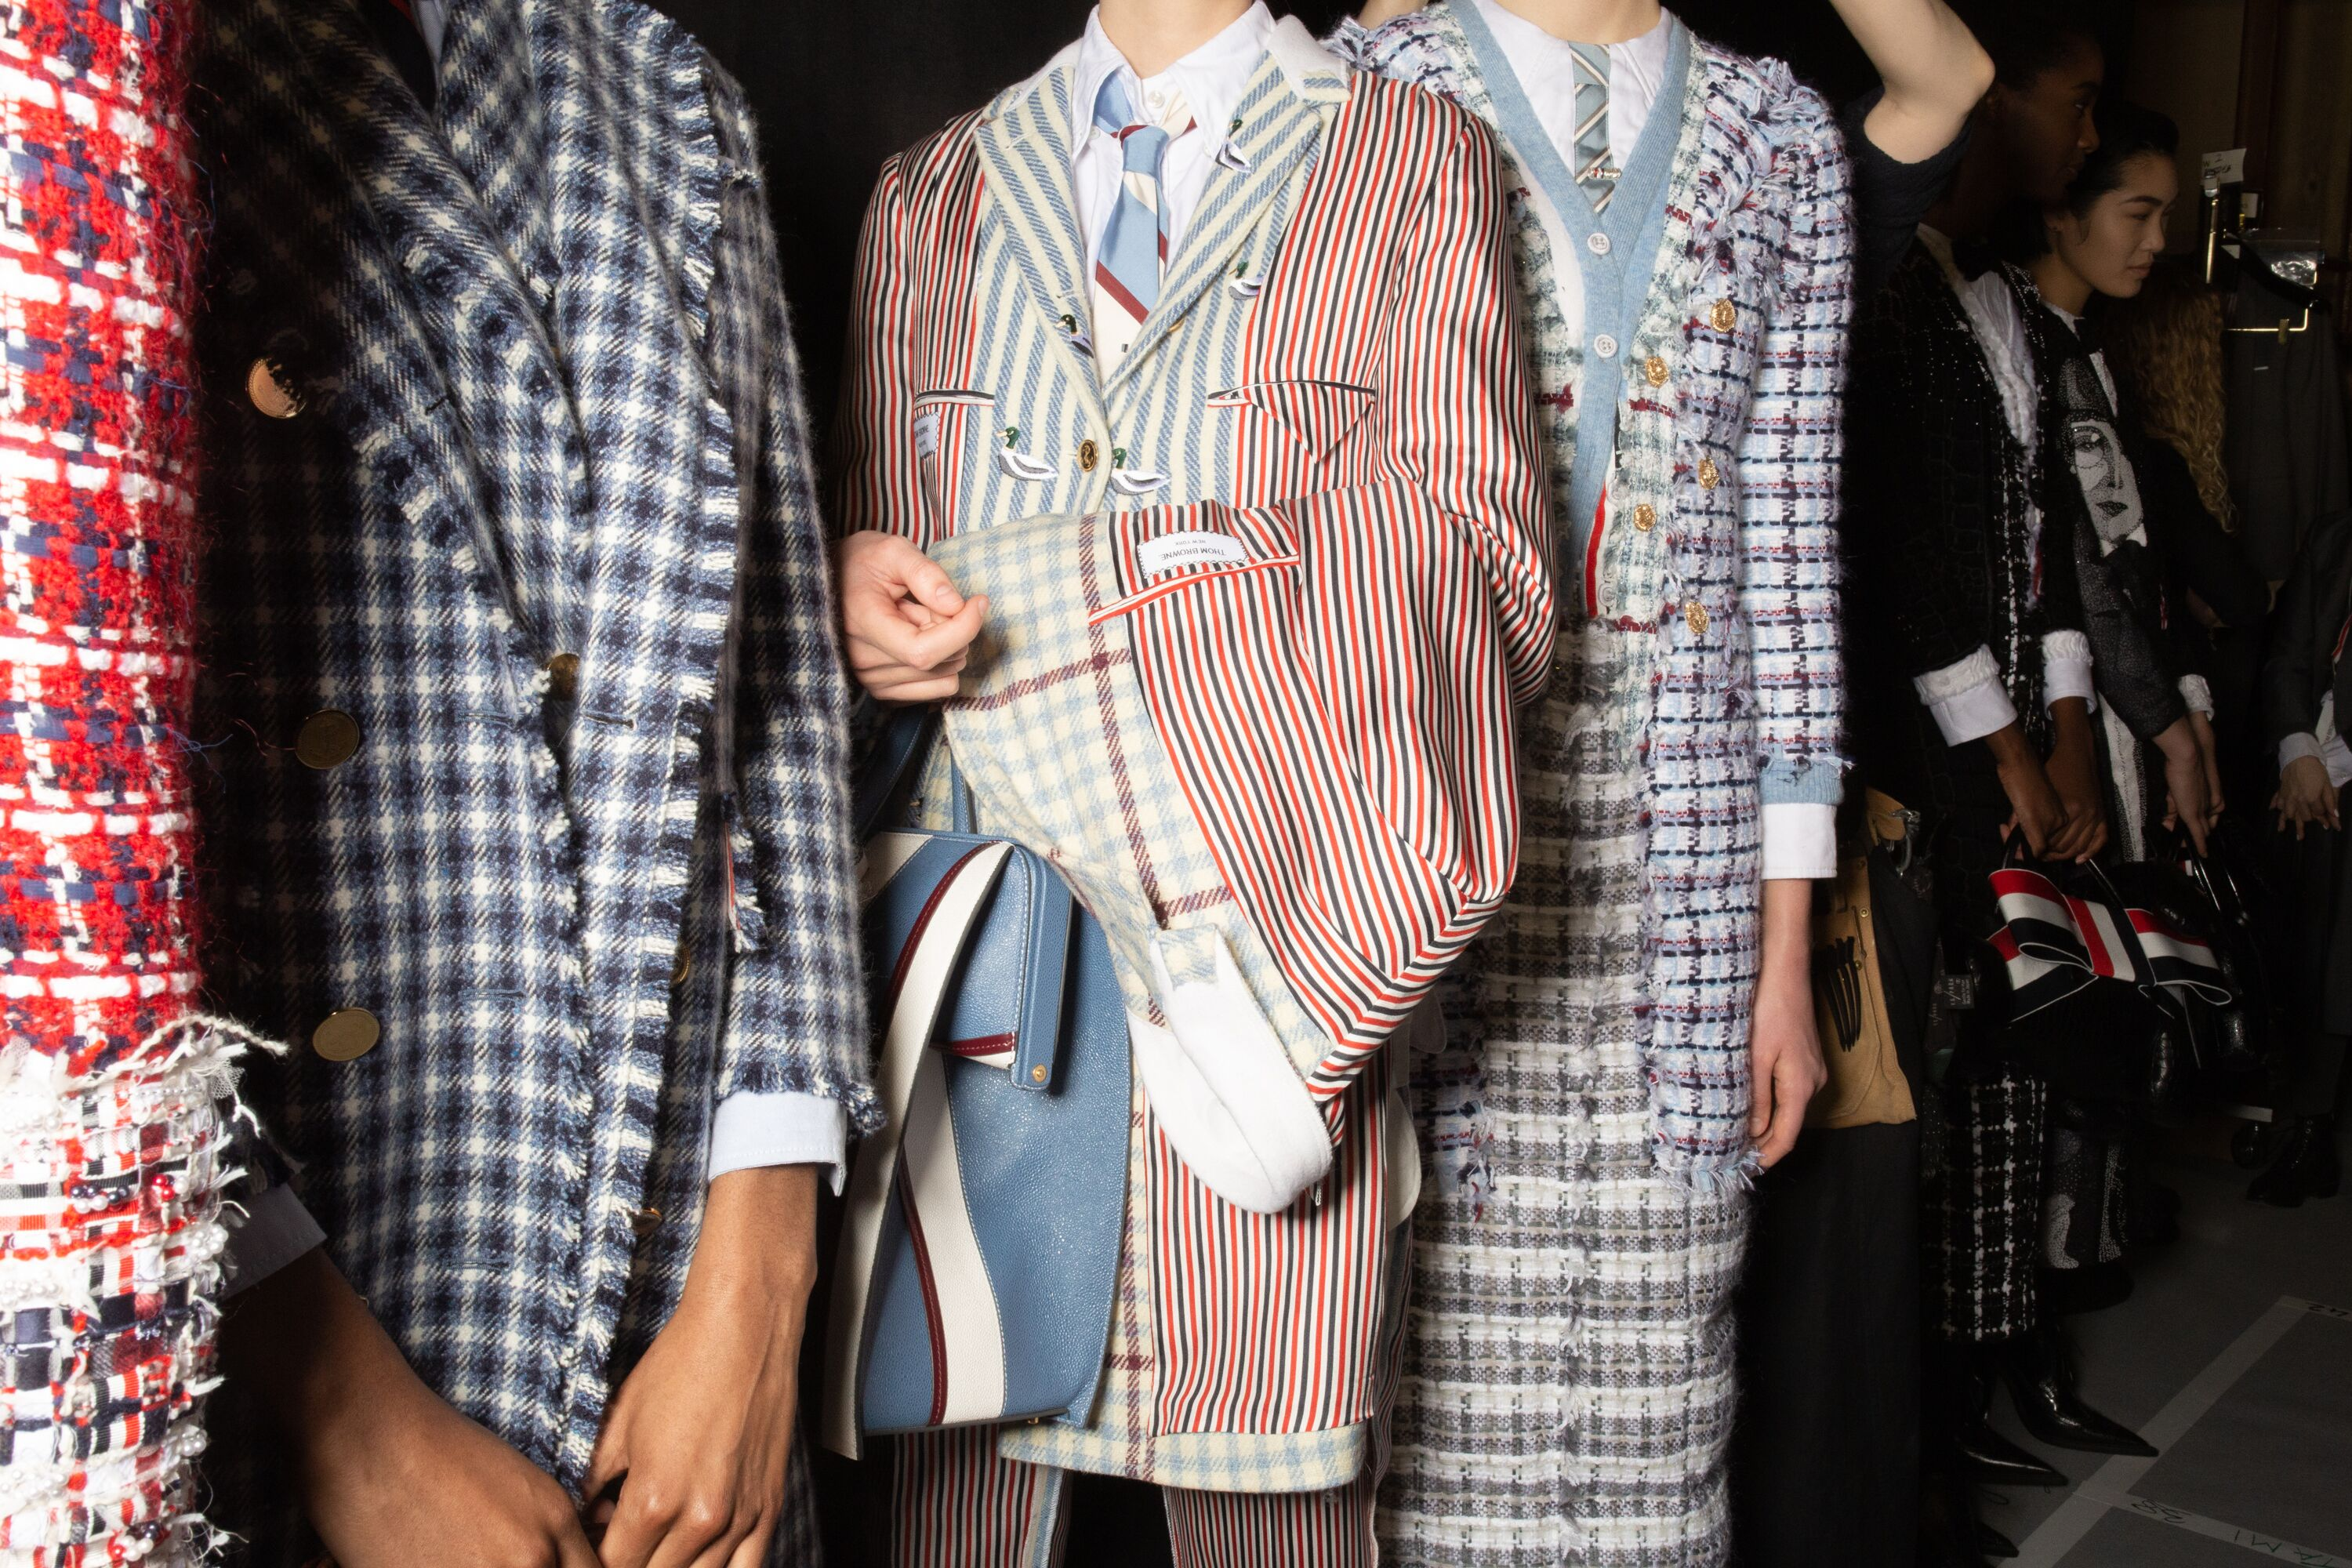 Thom Browne paris fashion week striped suit dress aw19